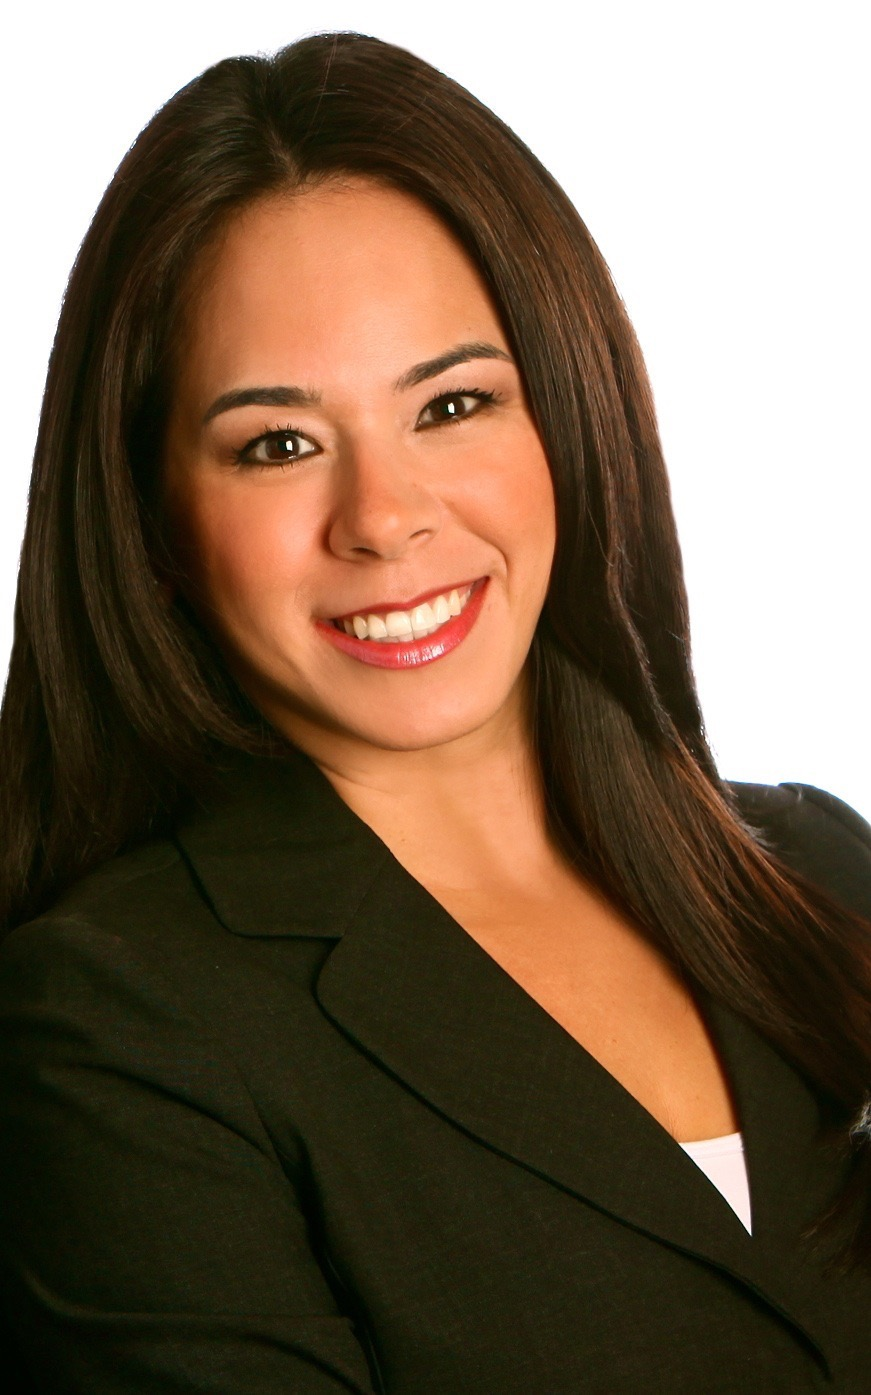 Headshot of TOKC board member Catherine